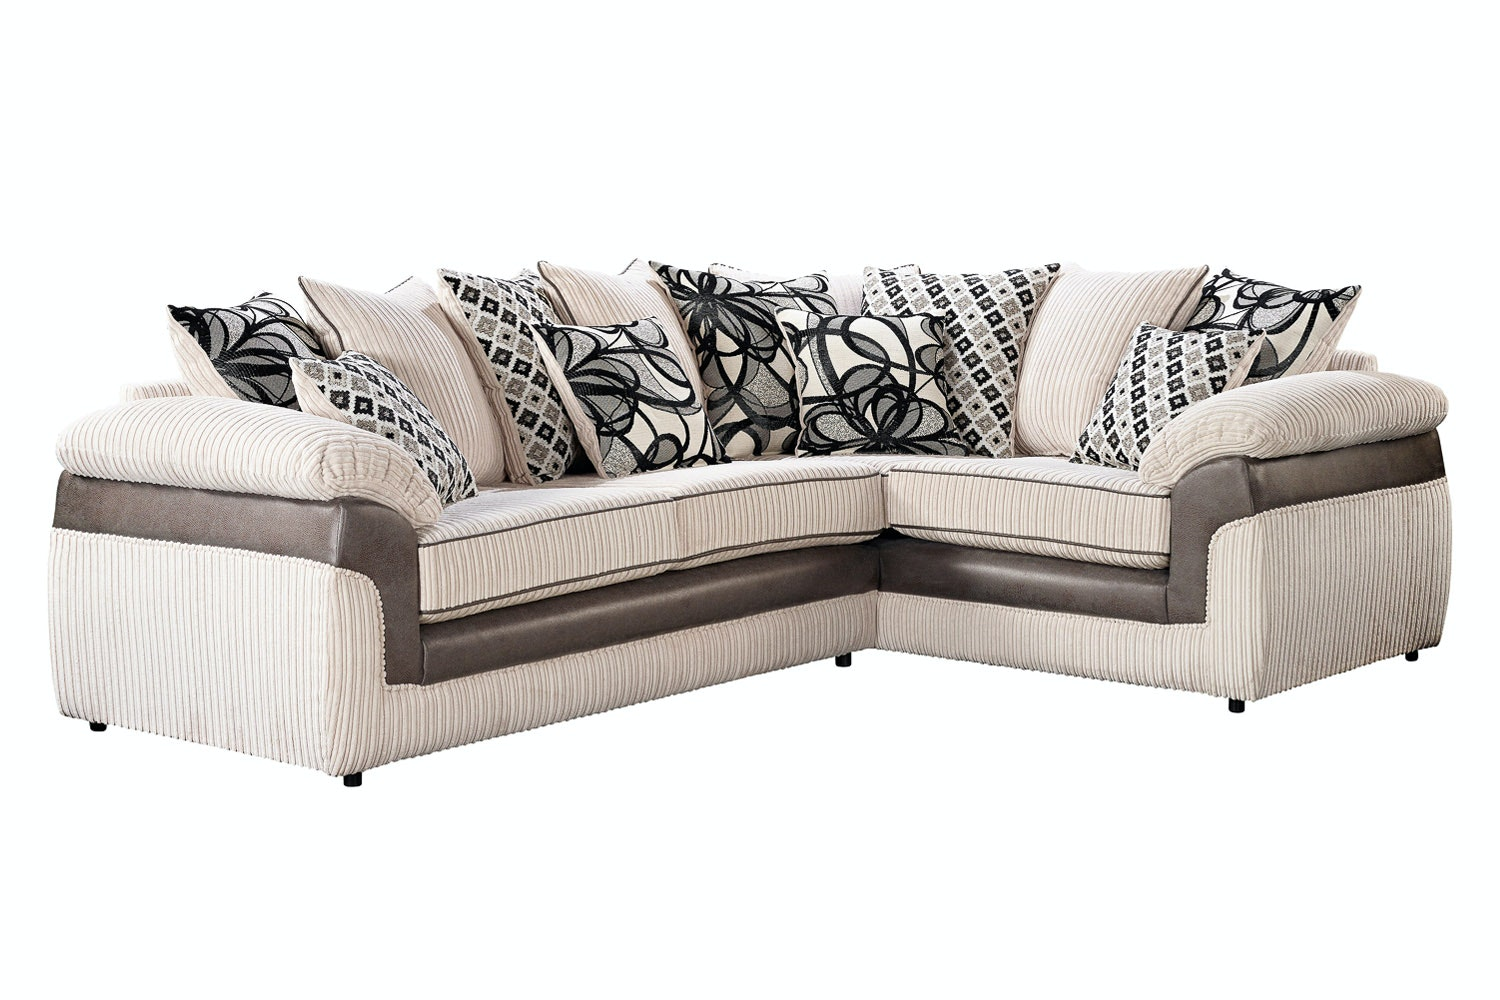 Pillow Back Vs. High Back Sofas: Which One Is For You?